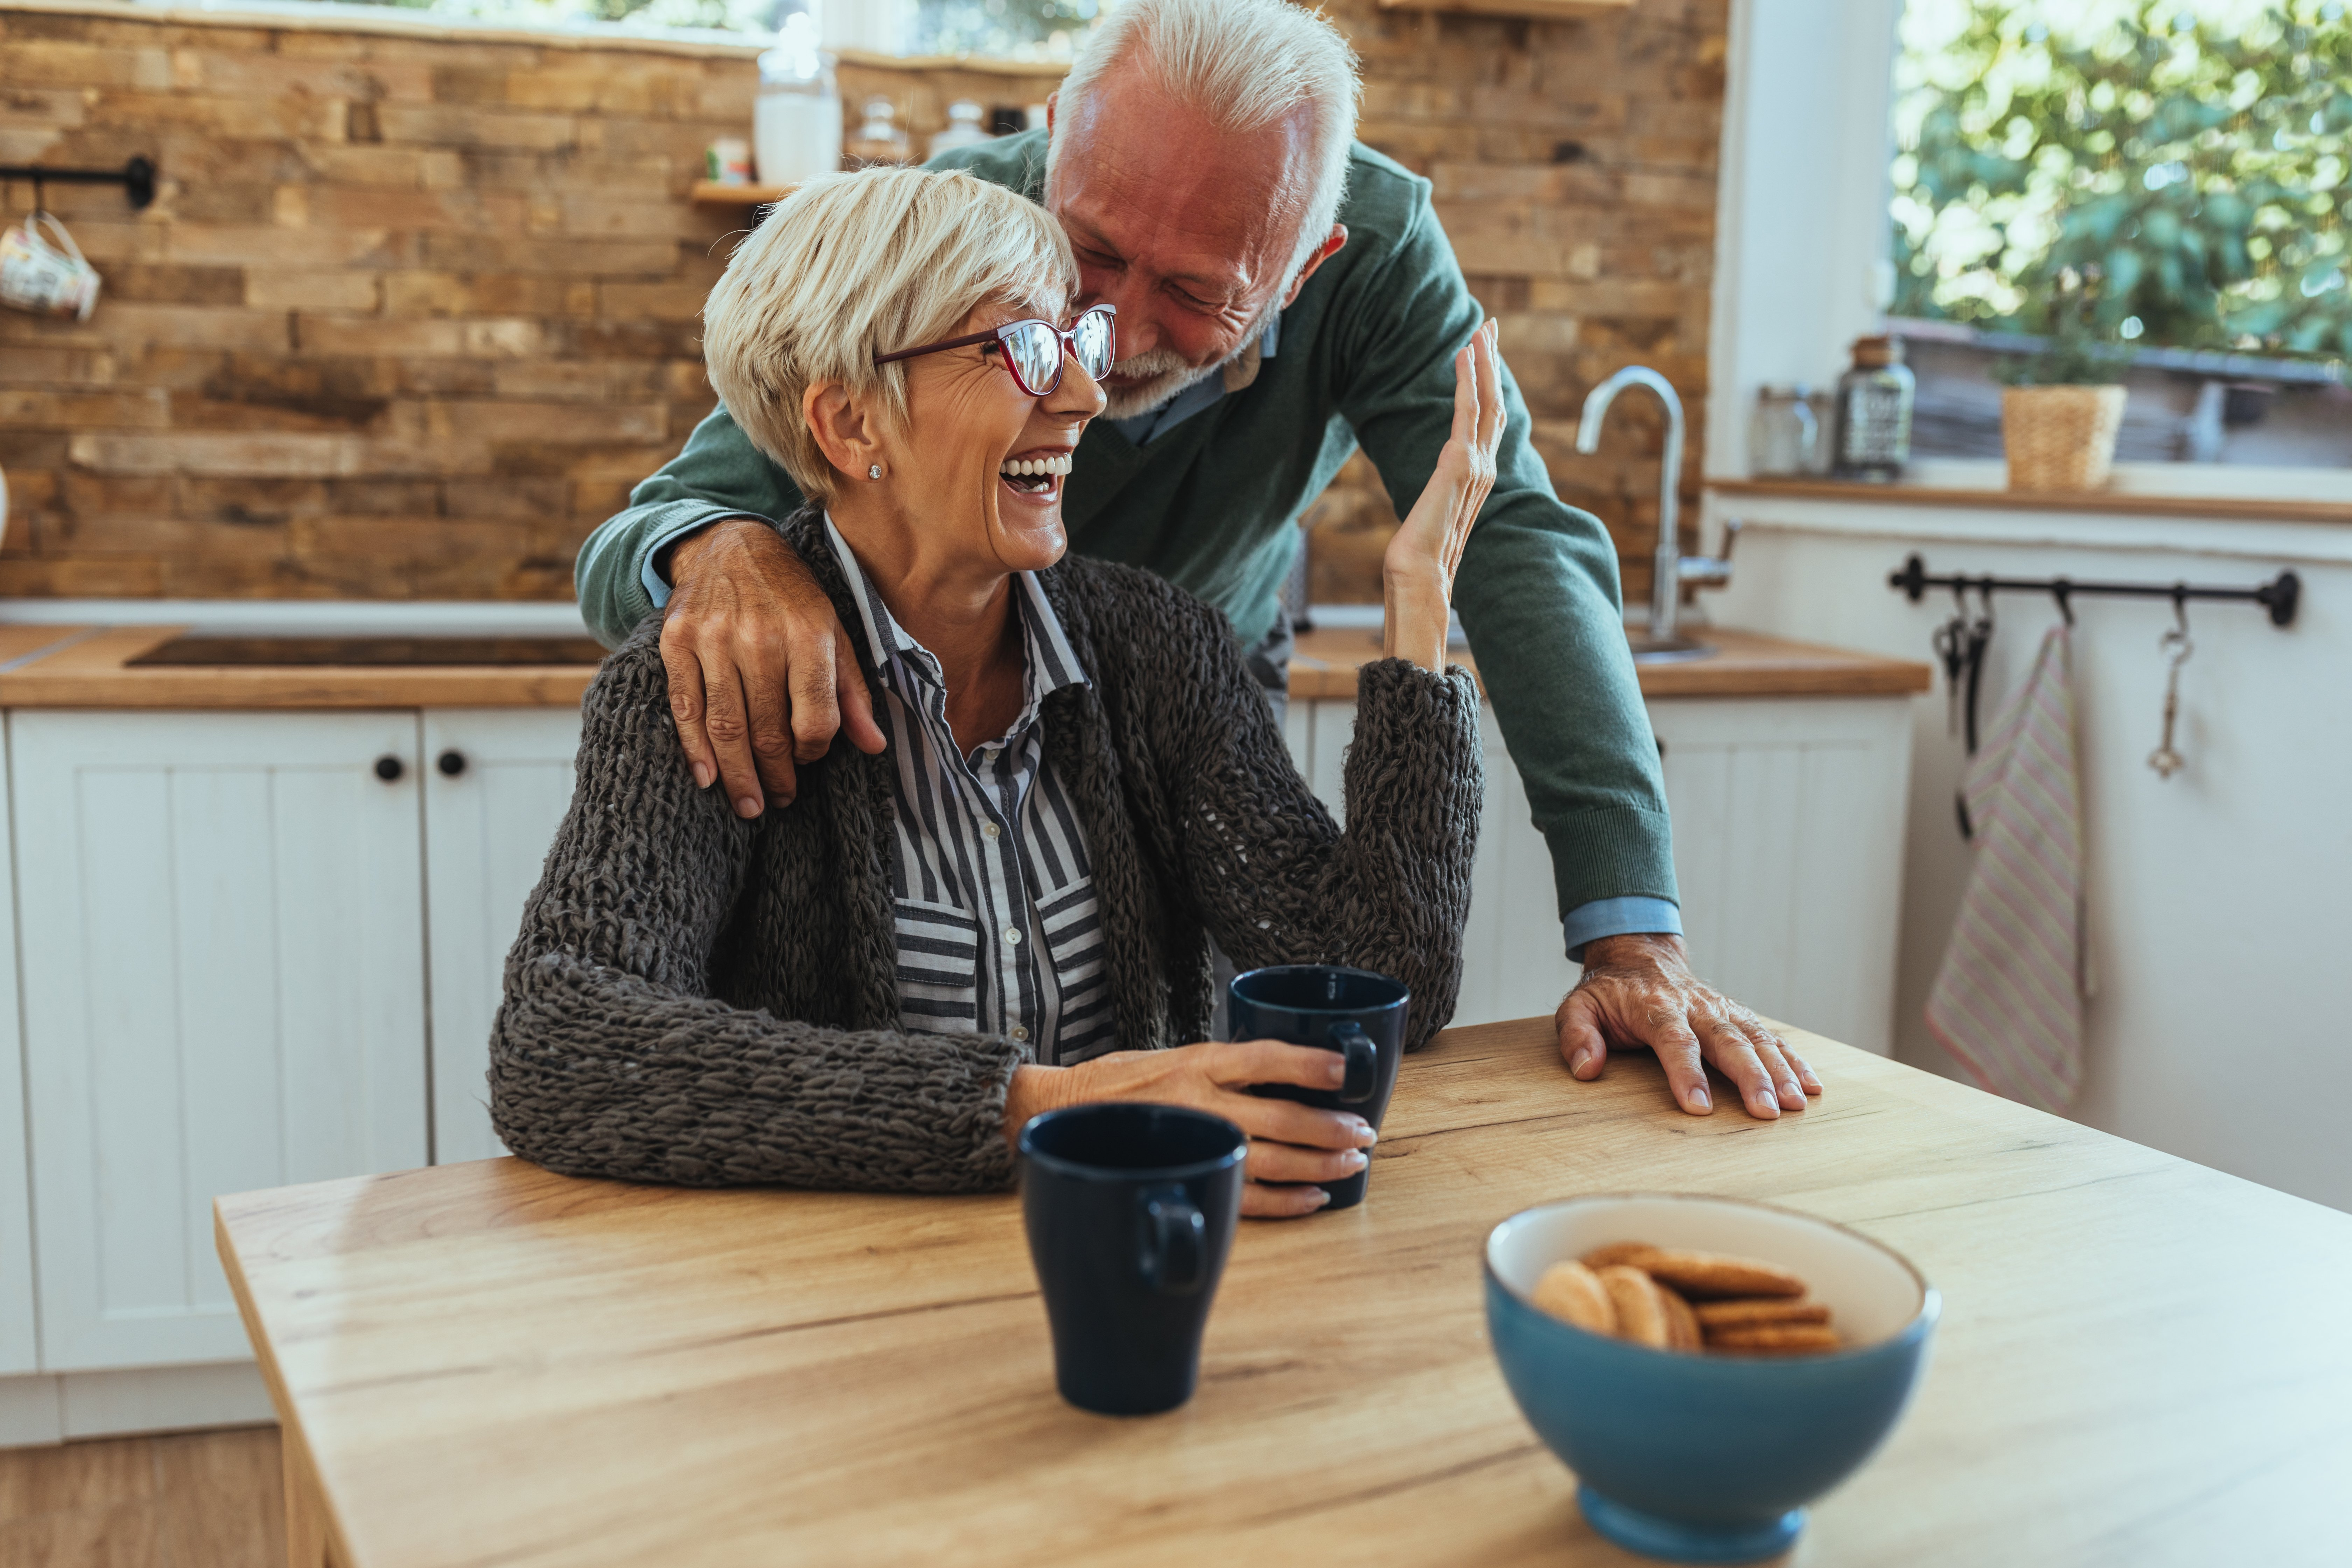 Elderly couple in kitchen laughing | Photo:Shutterstock